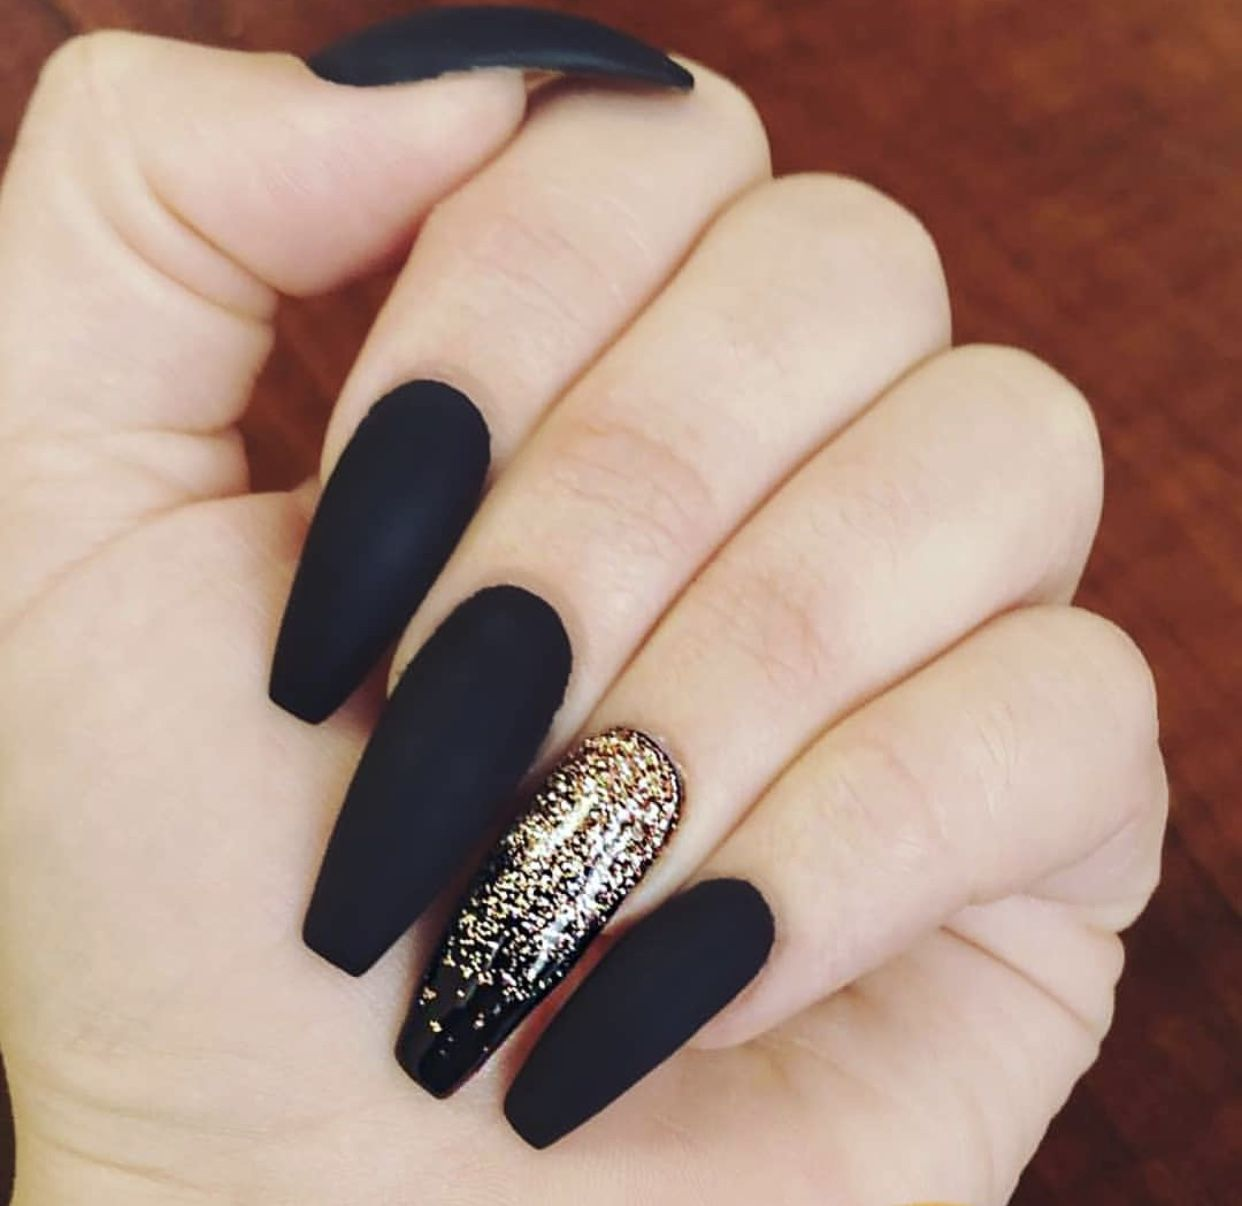 Pin By Josie Madelynn On Nails Gold Nails Black Gold Nails Matte Nails Design